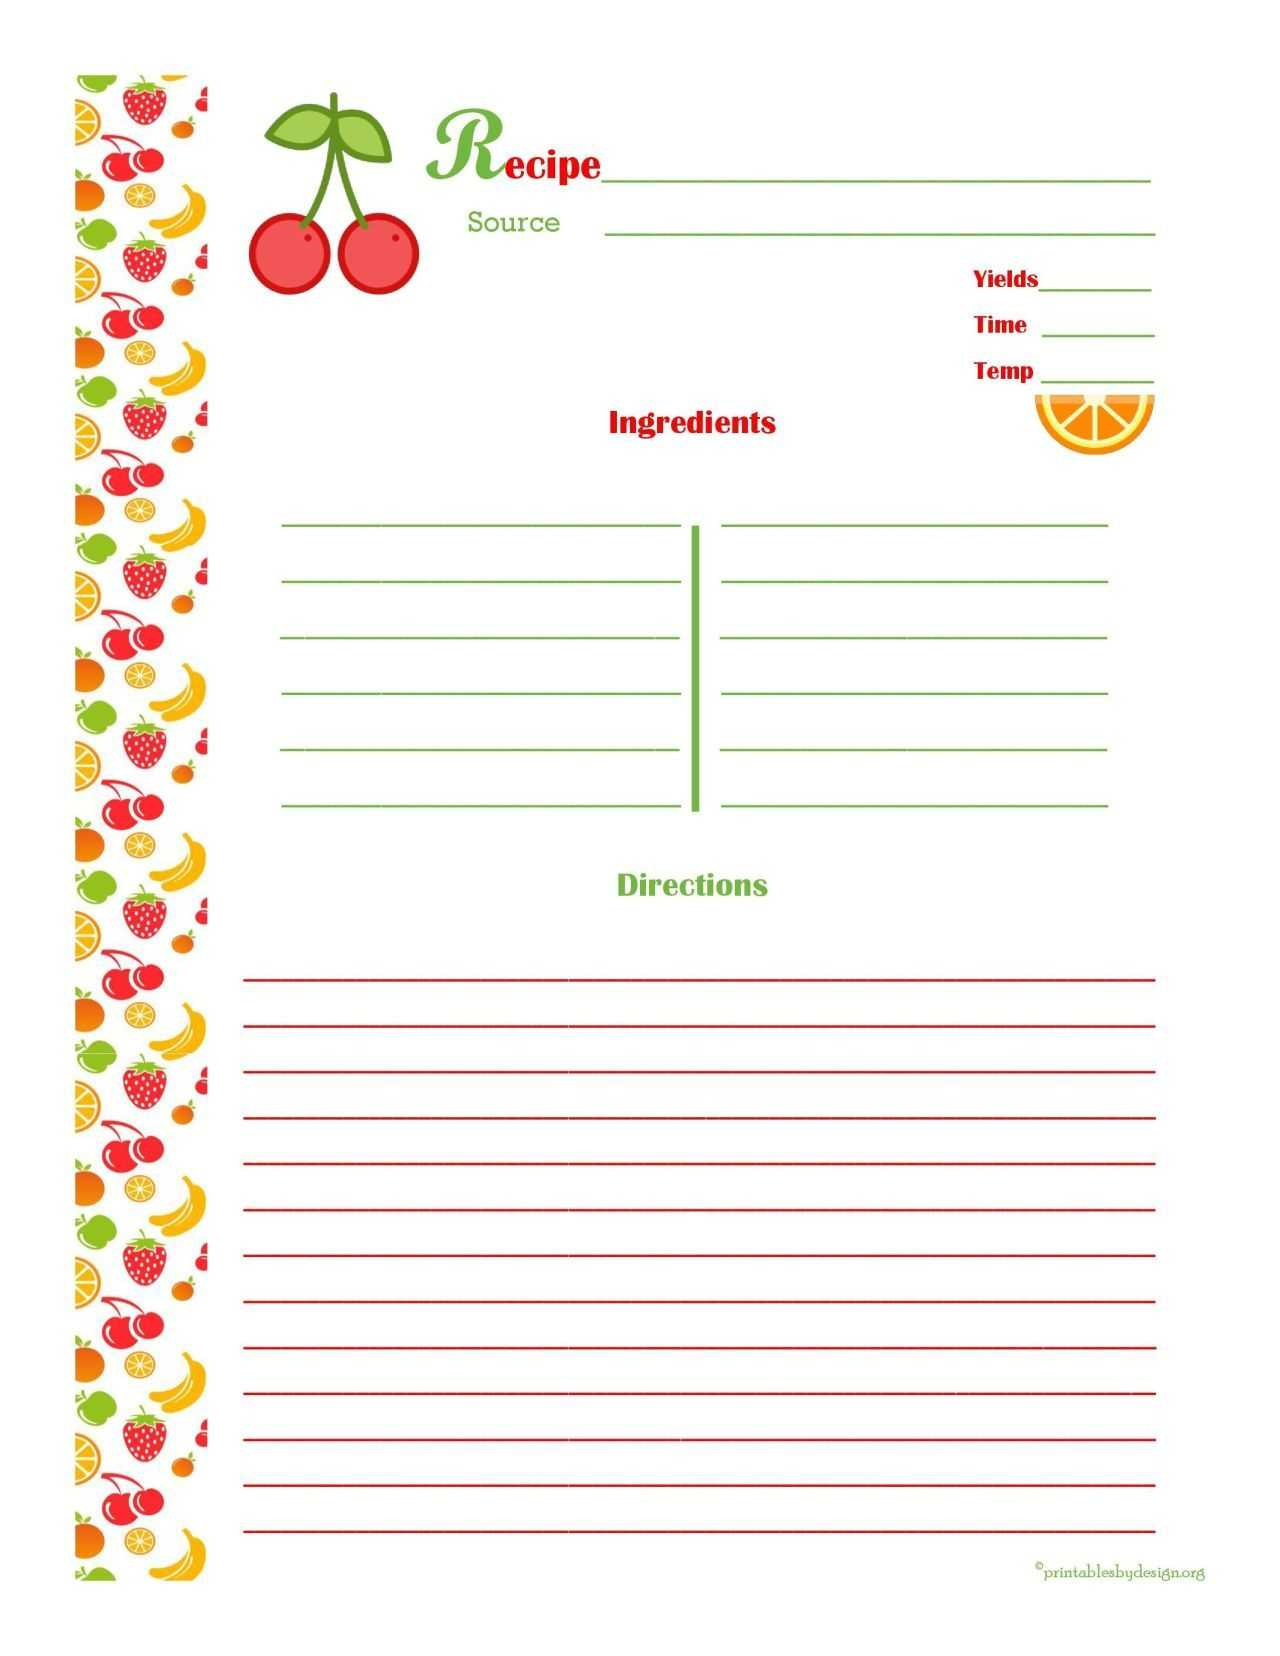 Free Editable Recipe Card Templates For Microsoft Word For Free Recipe Card Templates For Microsoft Word